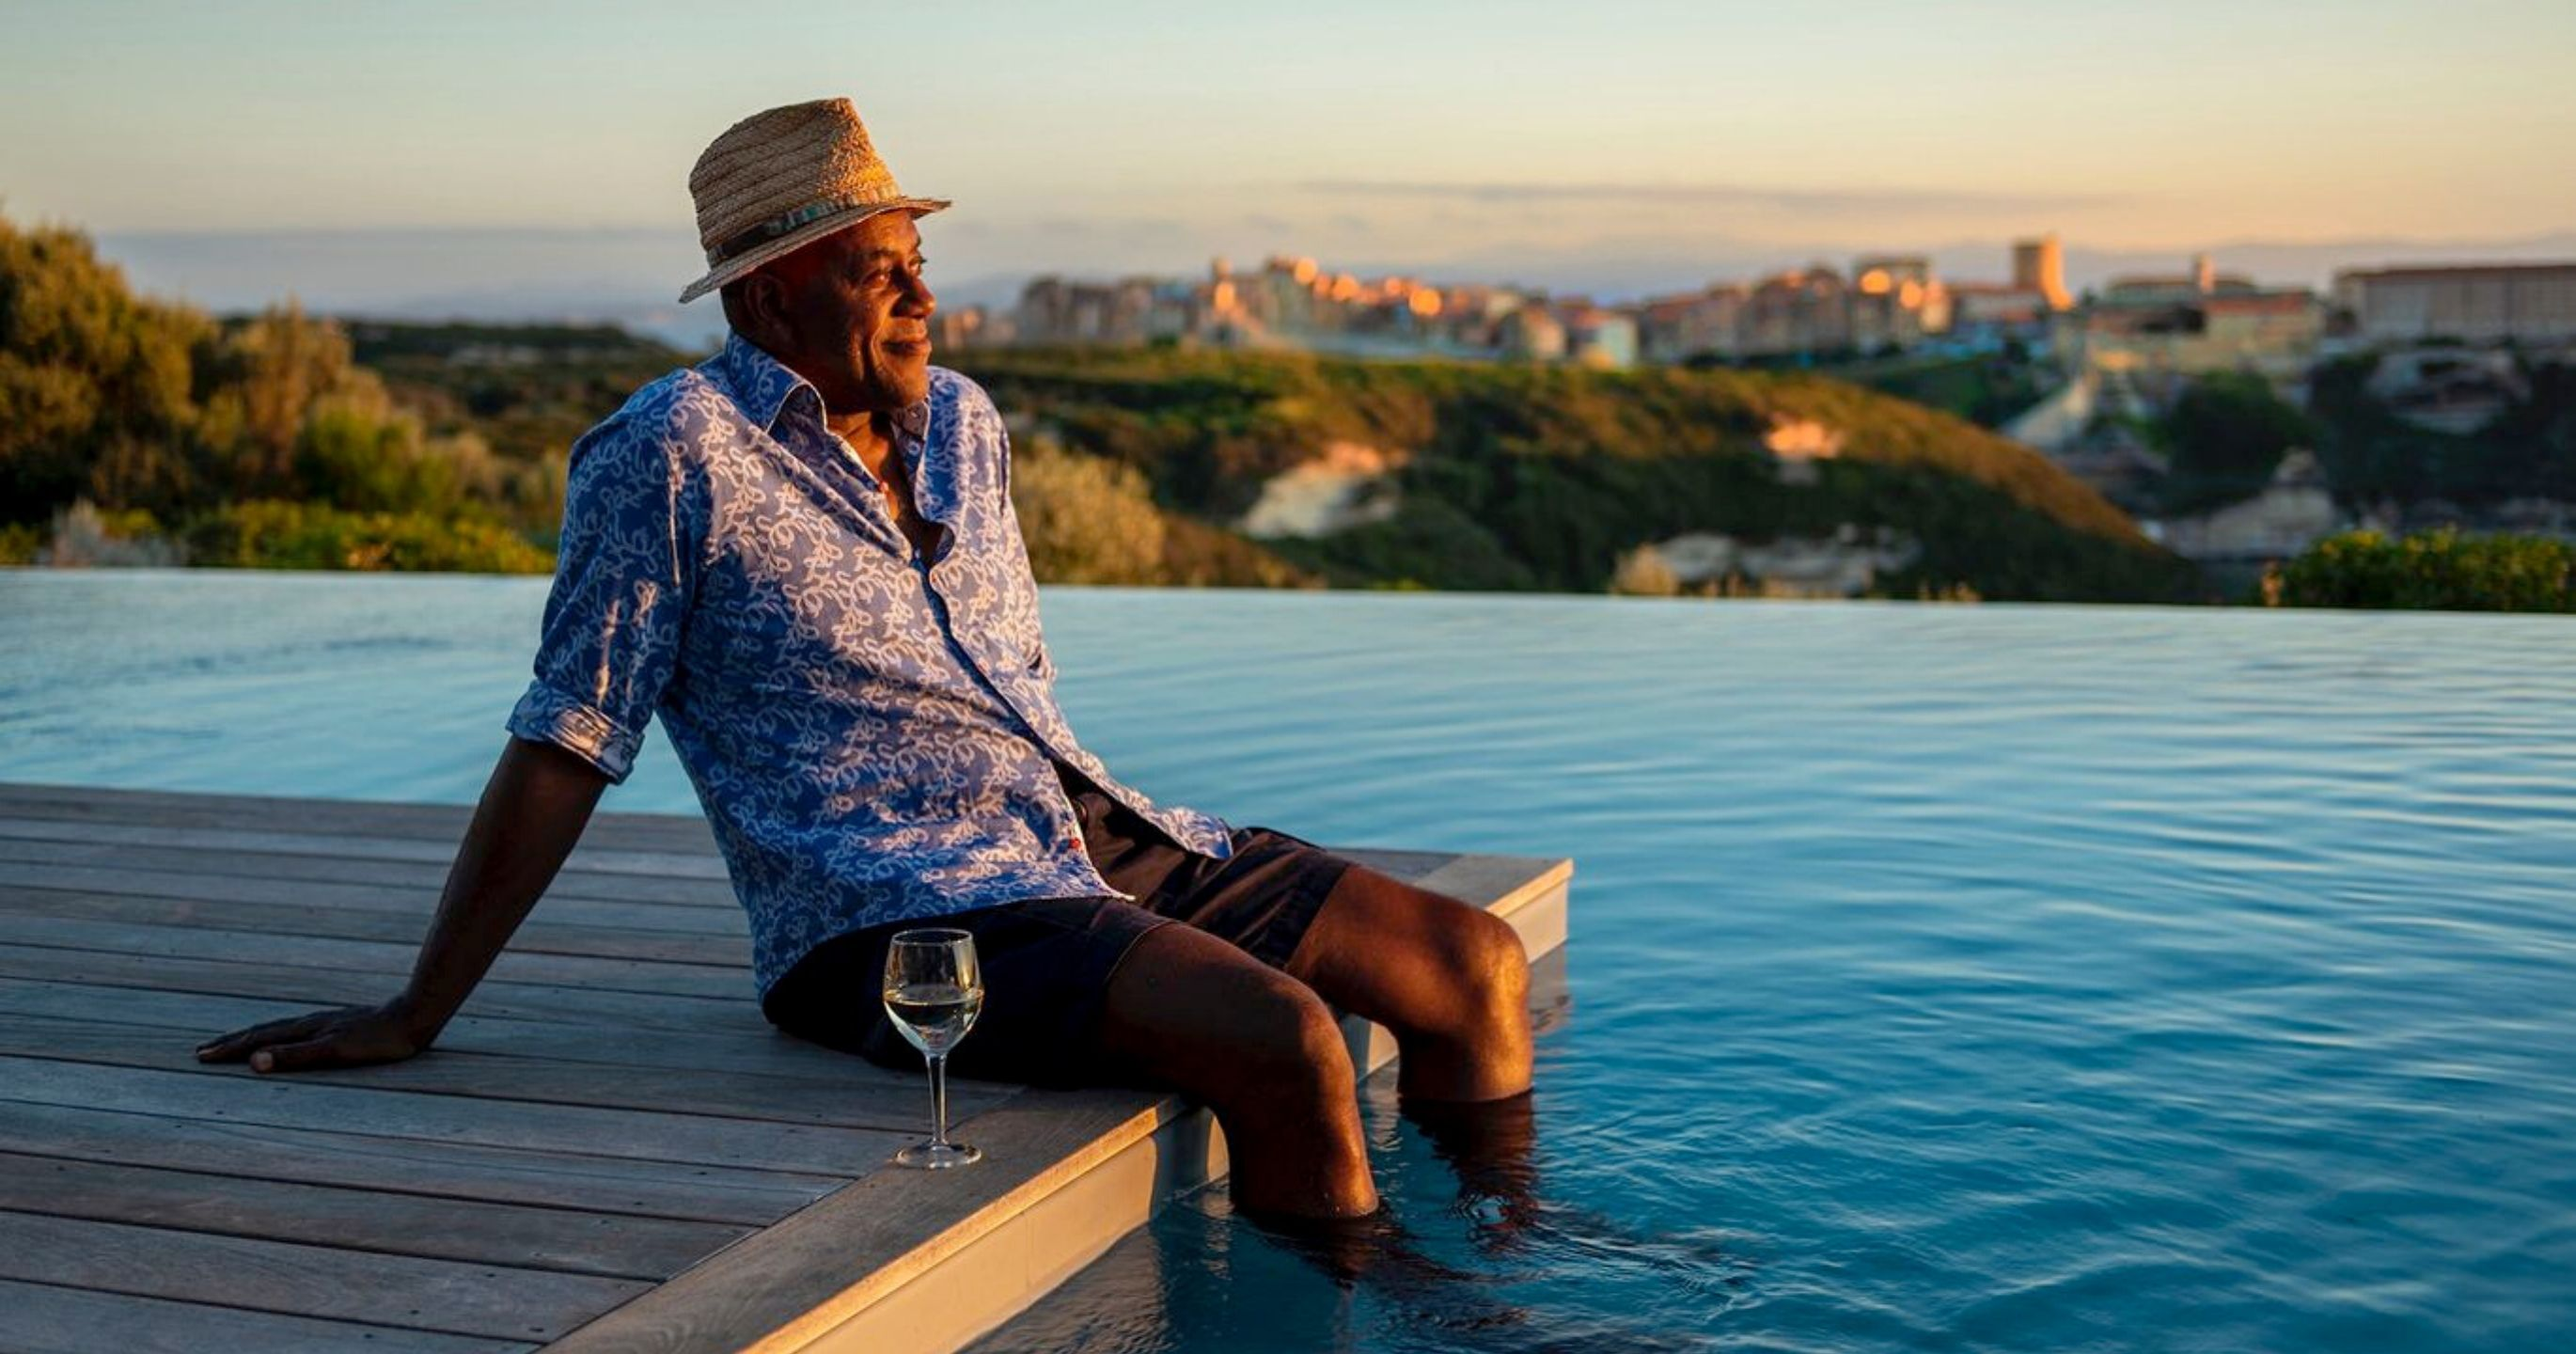 Ainsley Harriot sits with his legs in a swimming pool enjoying a glass of wine